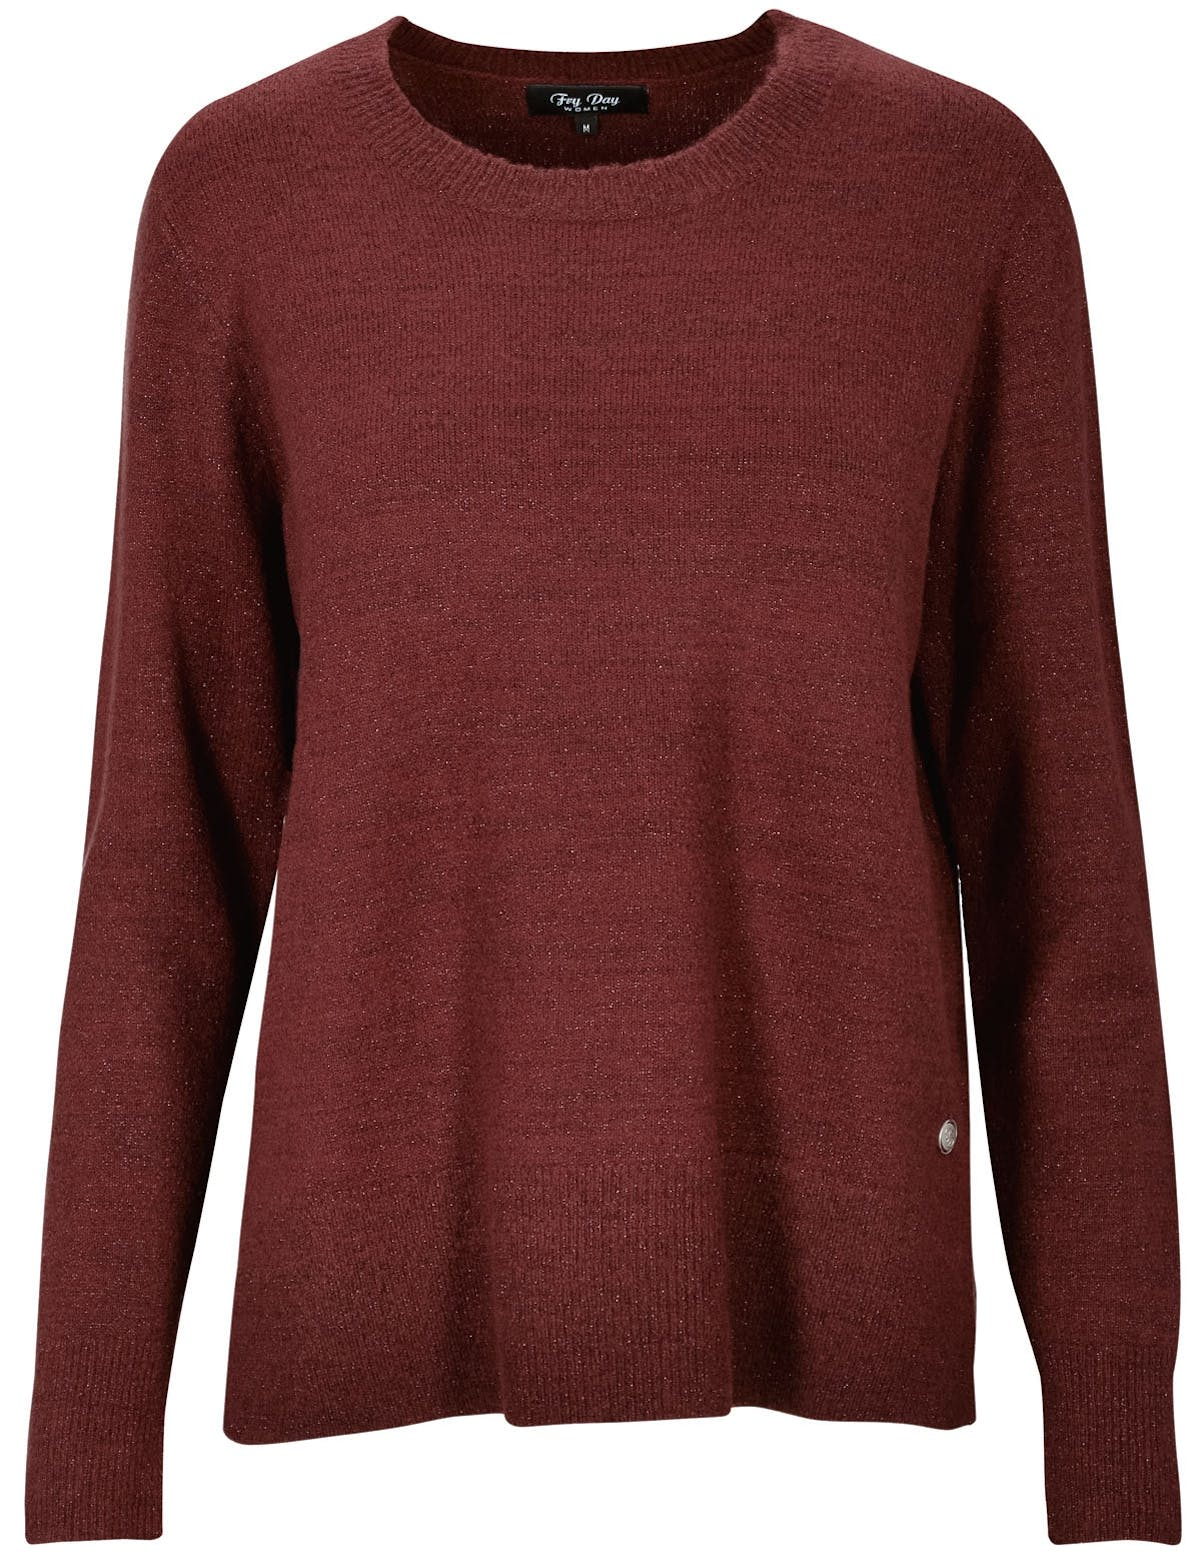 FRY DAY Rundhals Pullover - Frost Berry Melange